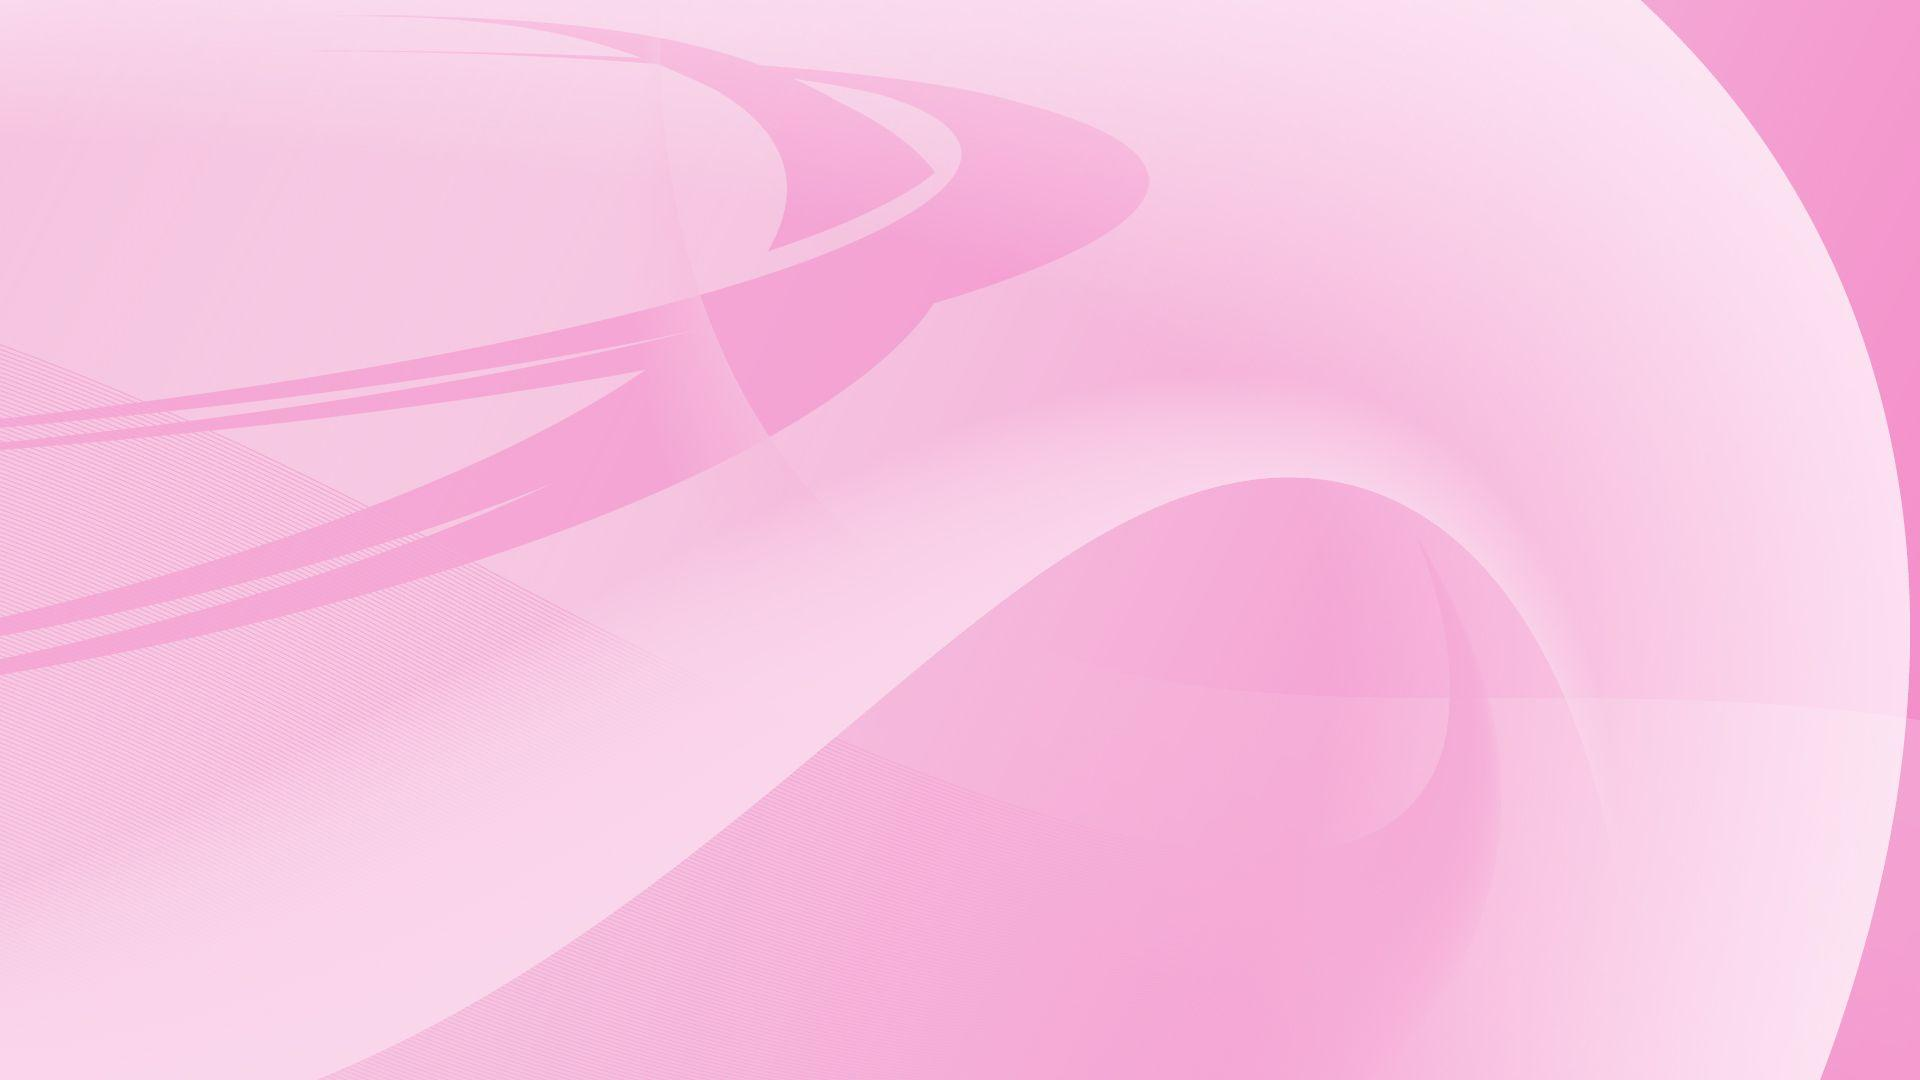 Gradient Pink HD Wallpapers